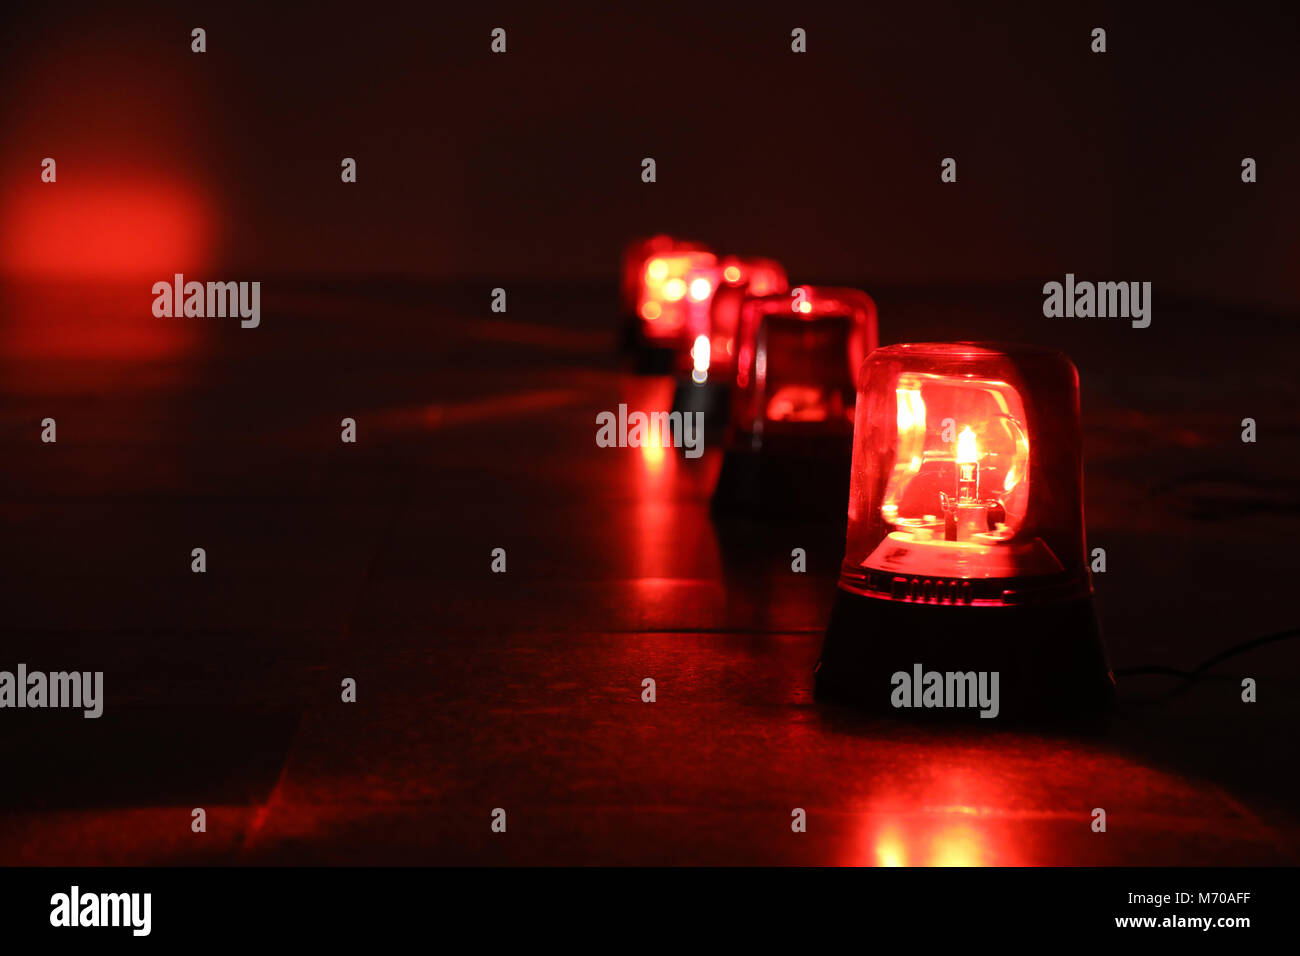 Flashing Red Lights Stock Photos Images Brakelight Flasher Brake Light Pulsing Background With Big Alarm Image